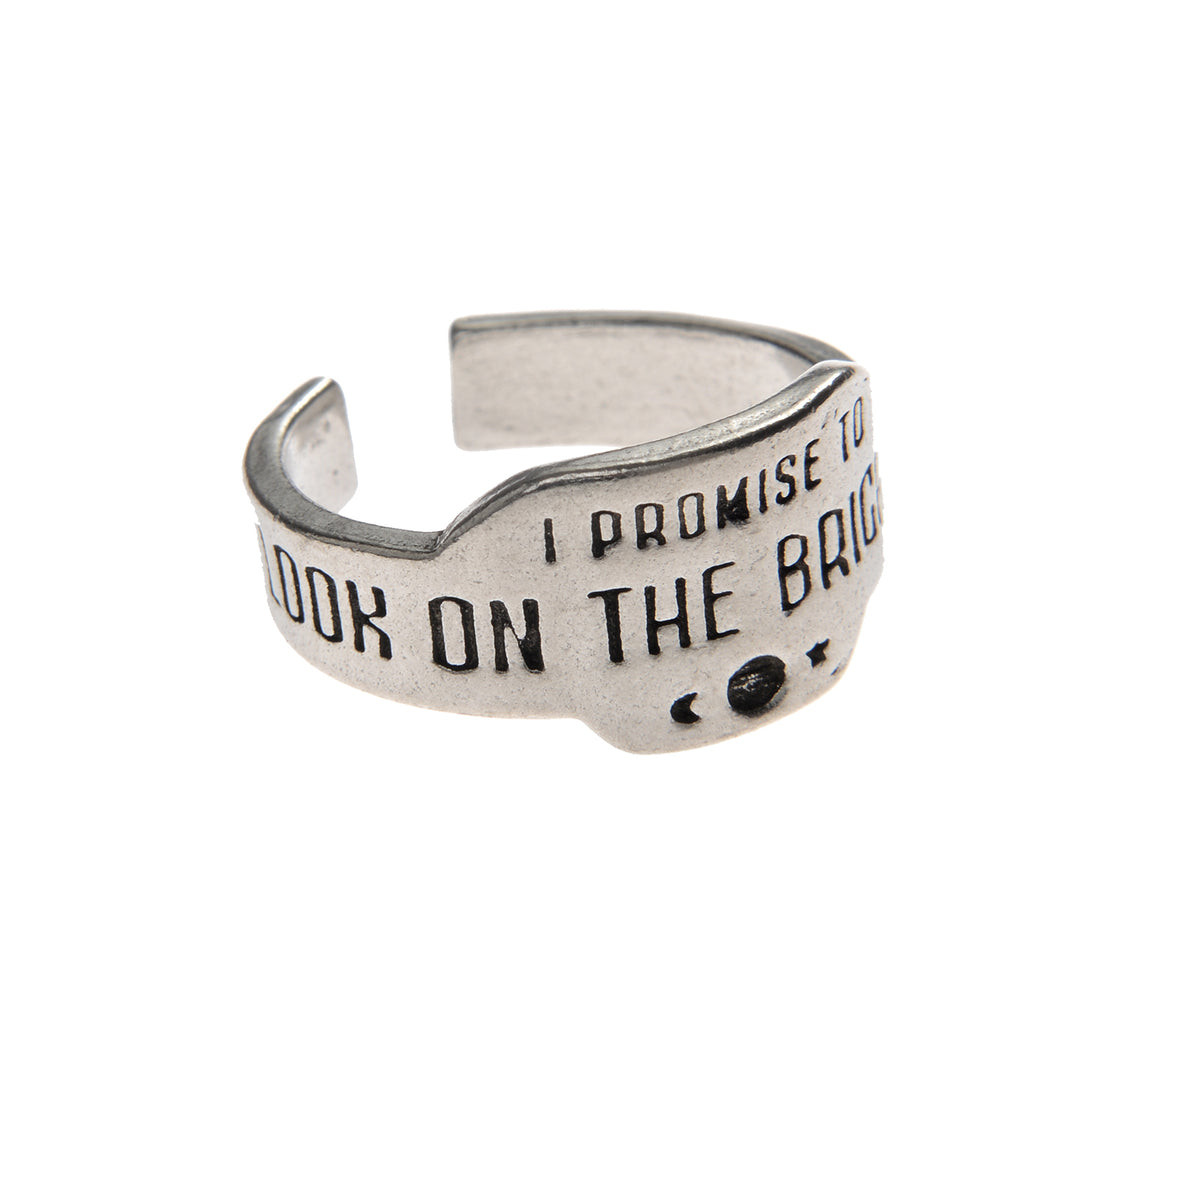 Look On The Bright Side Promise Ring